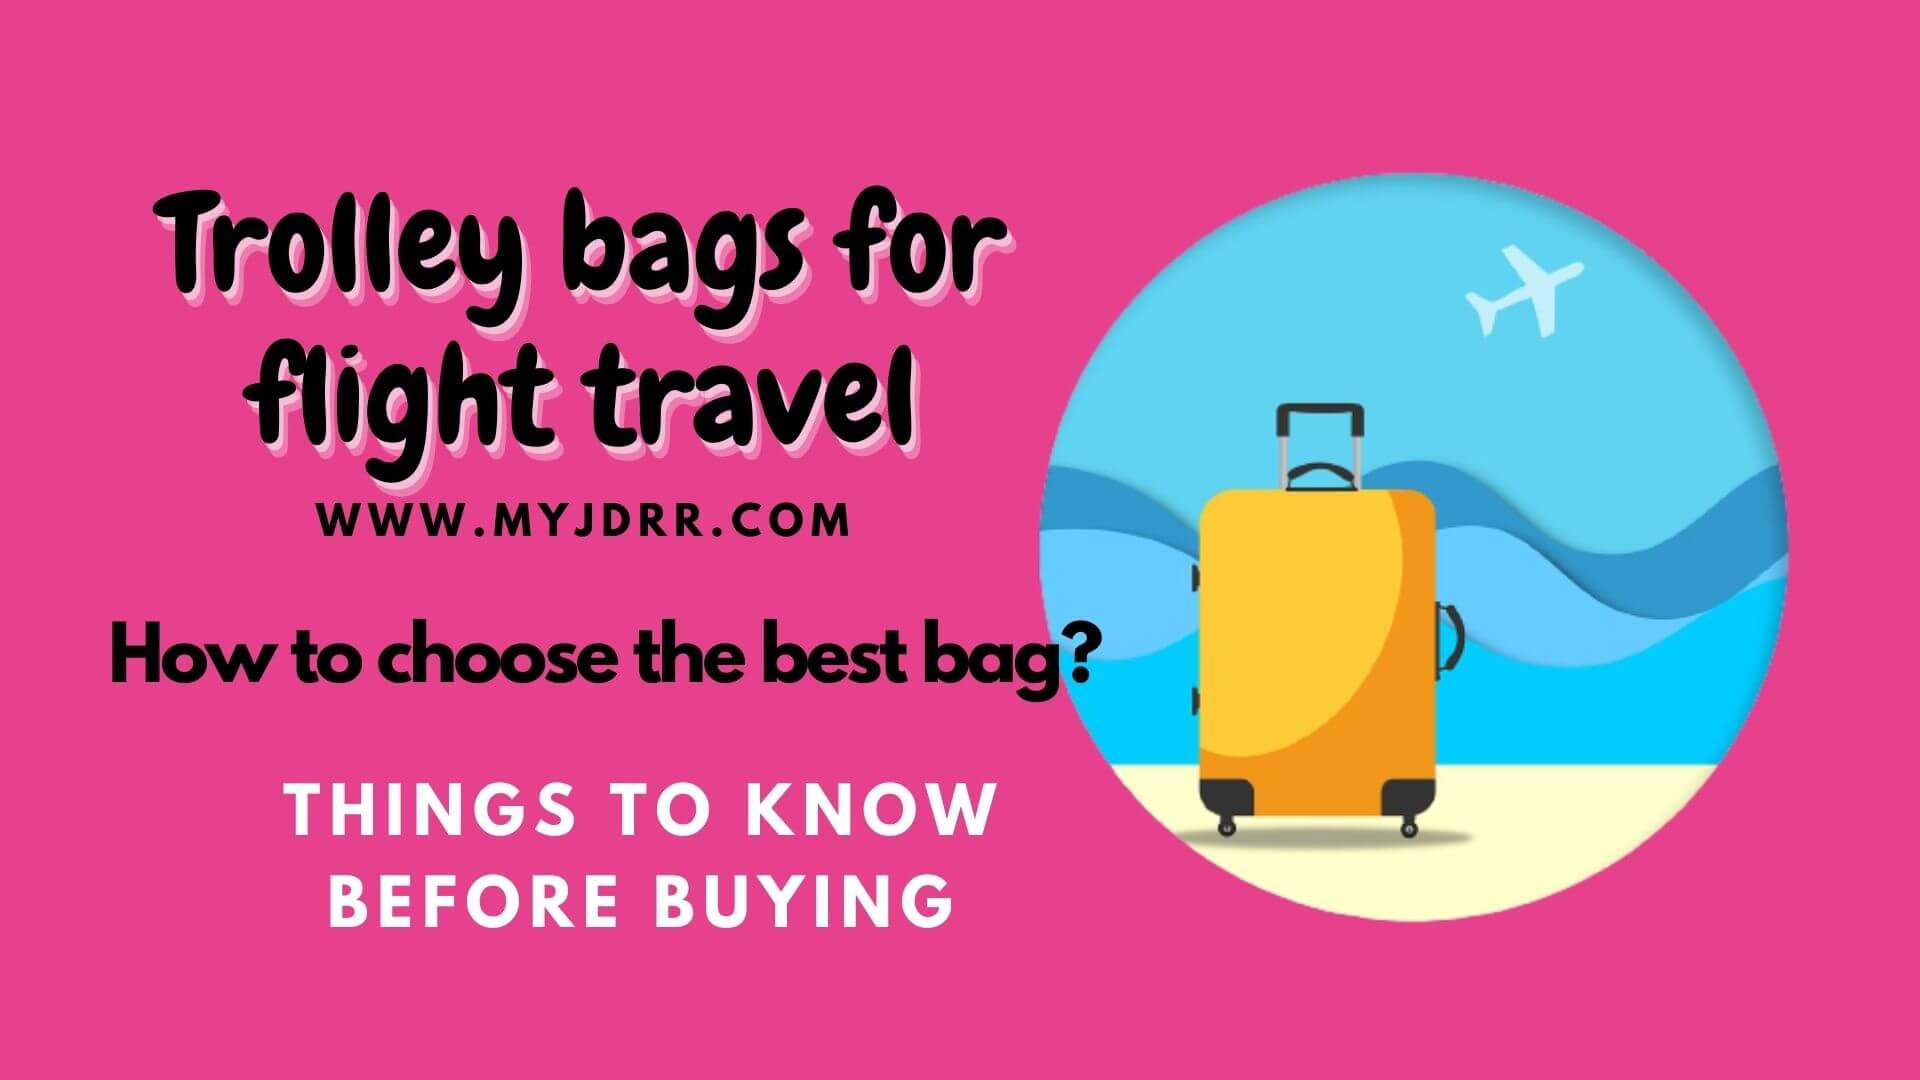 Trolley bags for flight travel - Things to know before buying